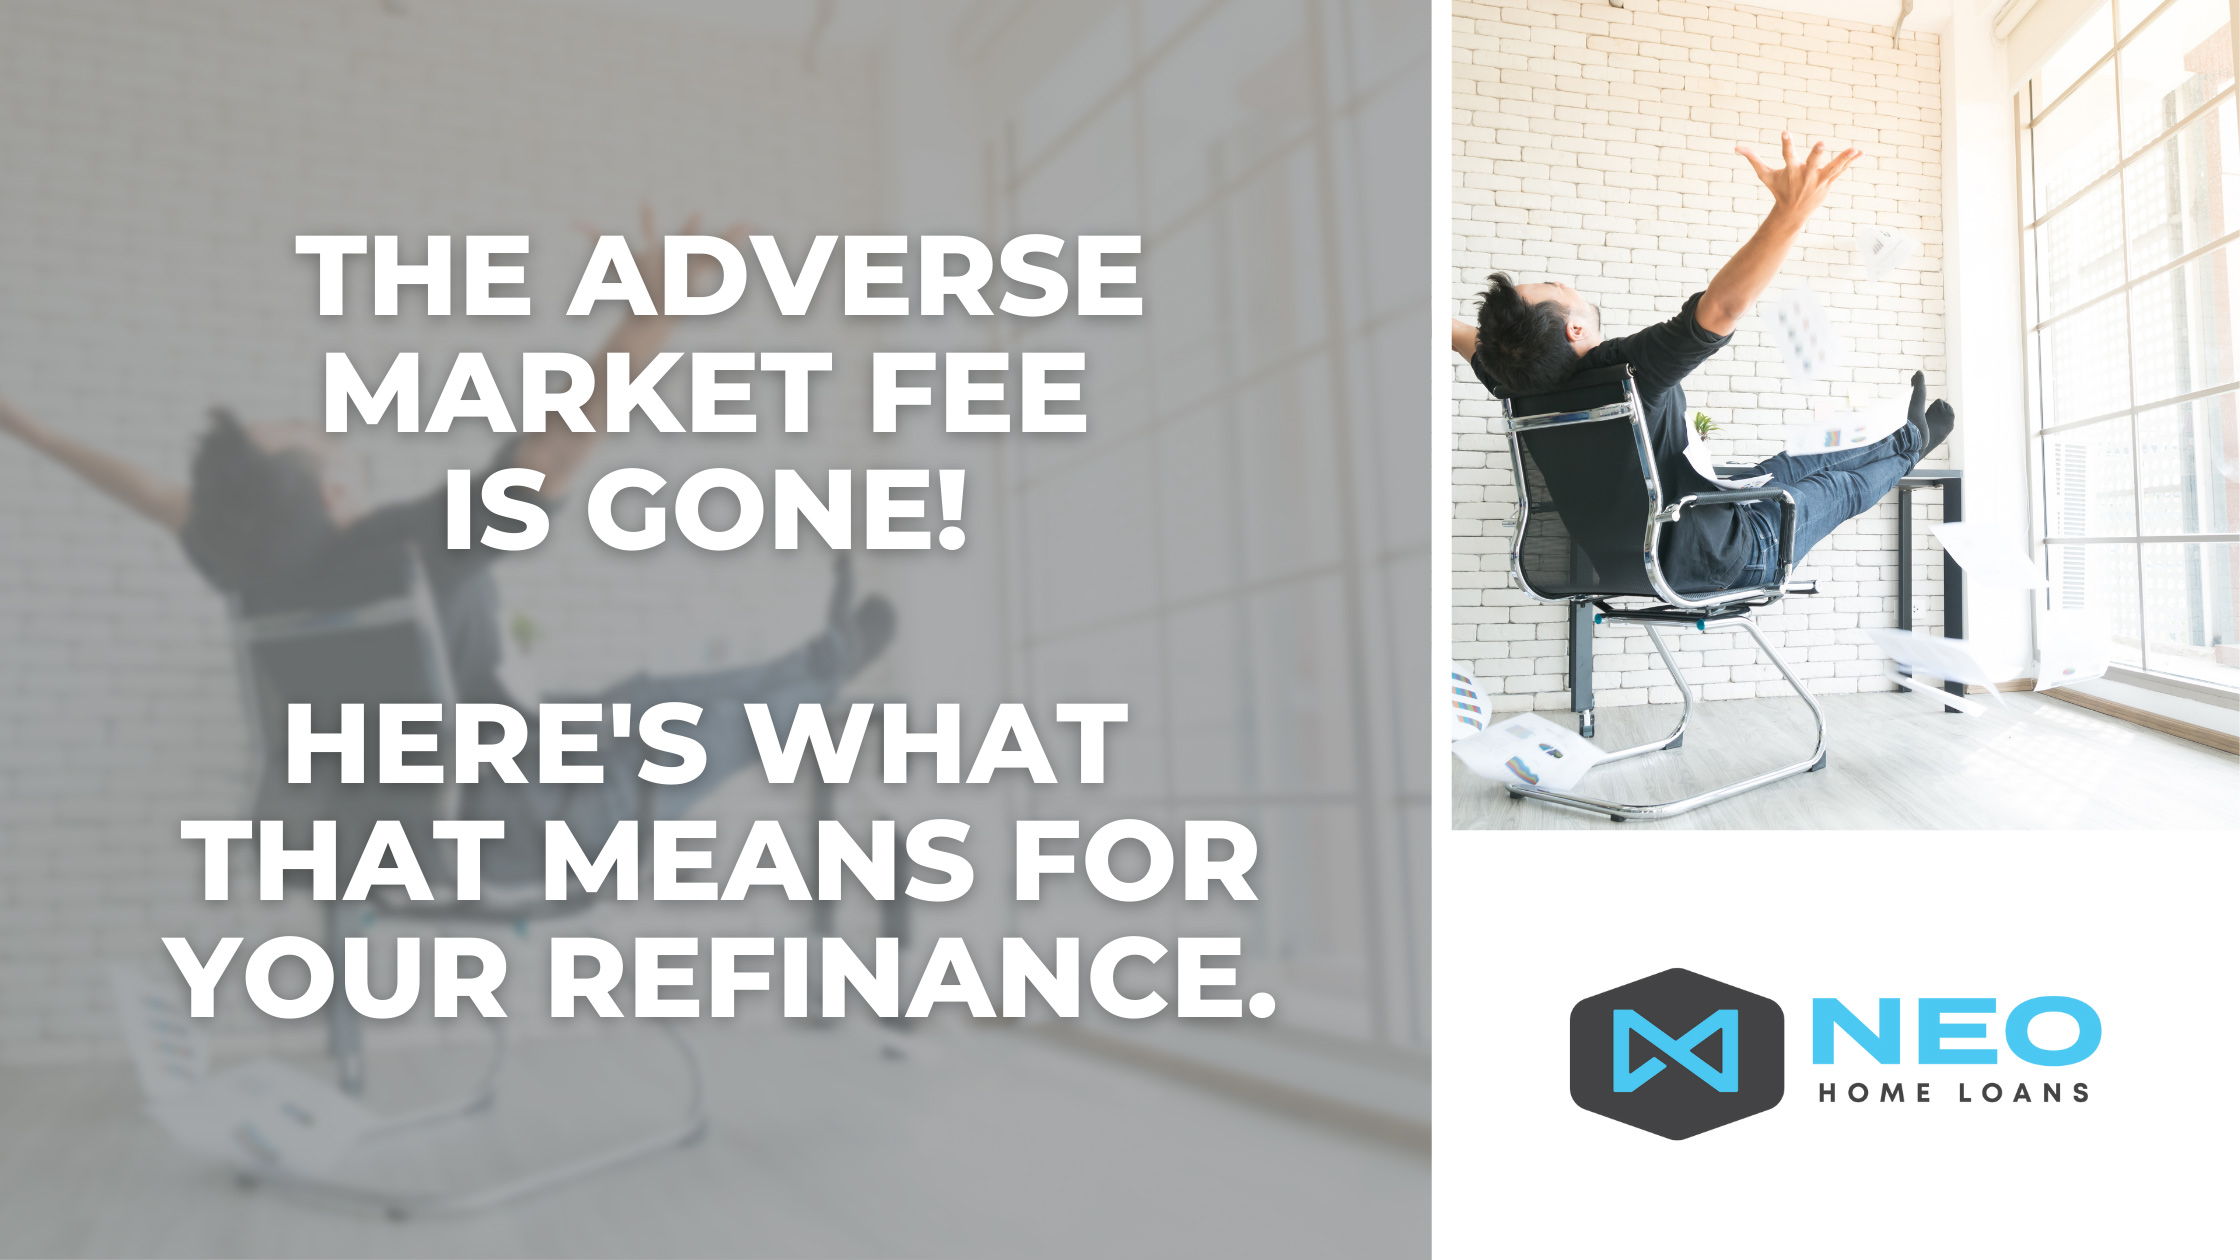 The Adverse Market Fee Is Gone! Here's What That Means For Your Refinance.